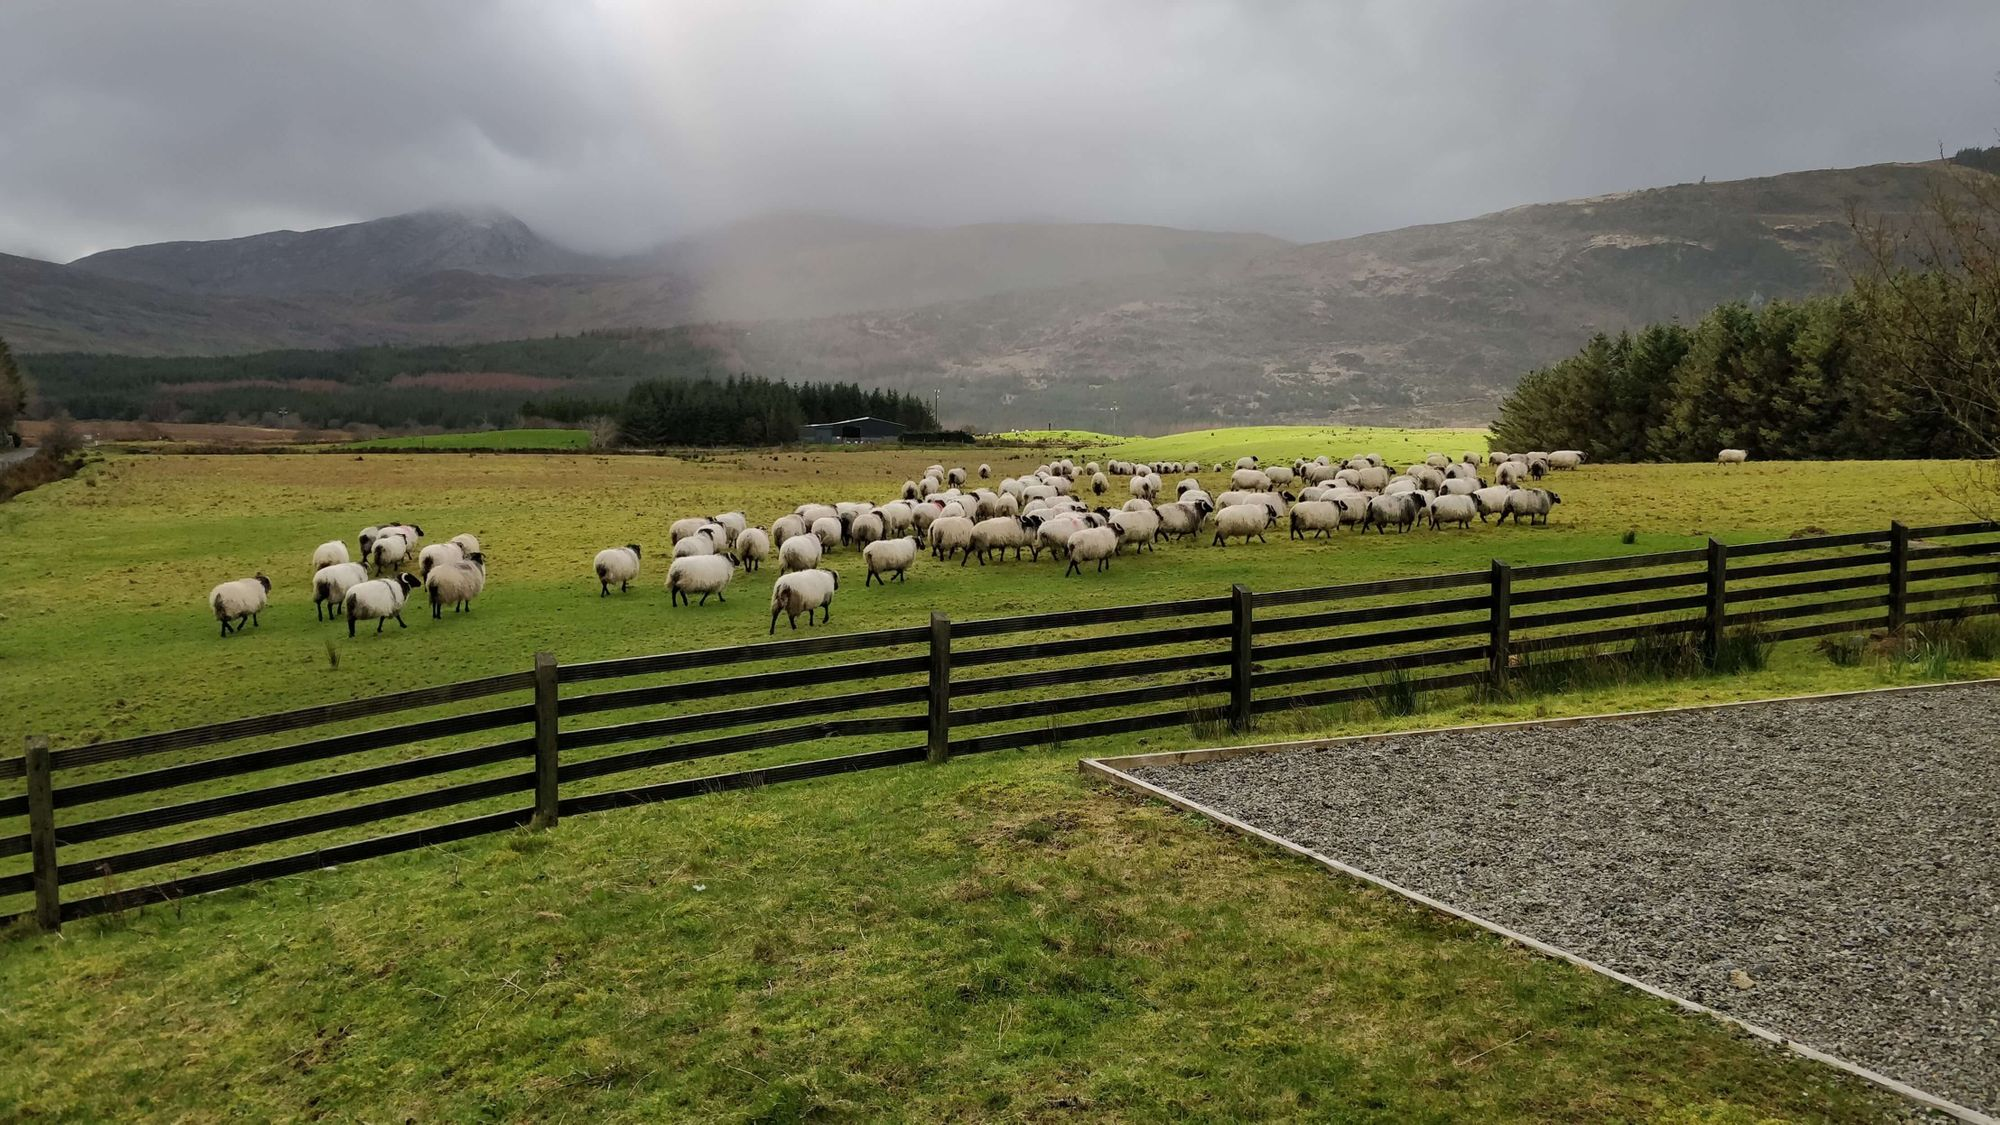 Sheep going out to pasture after being scanned for lambs